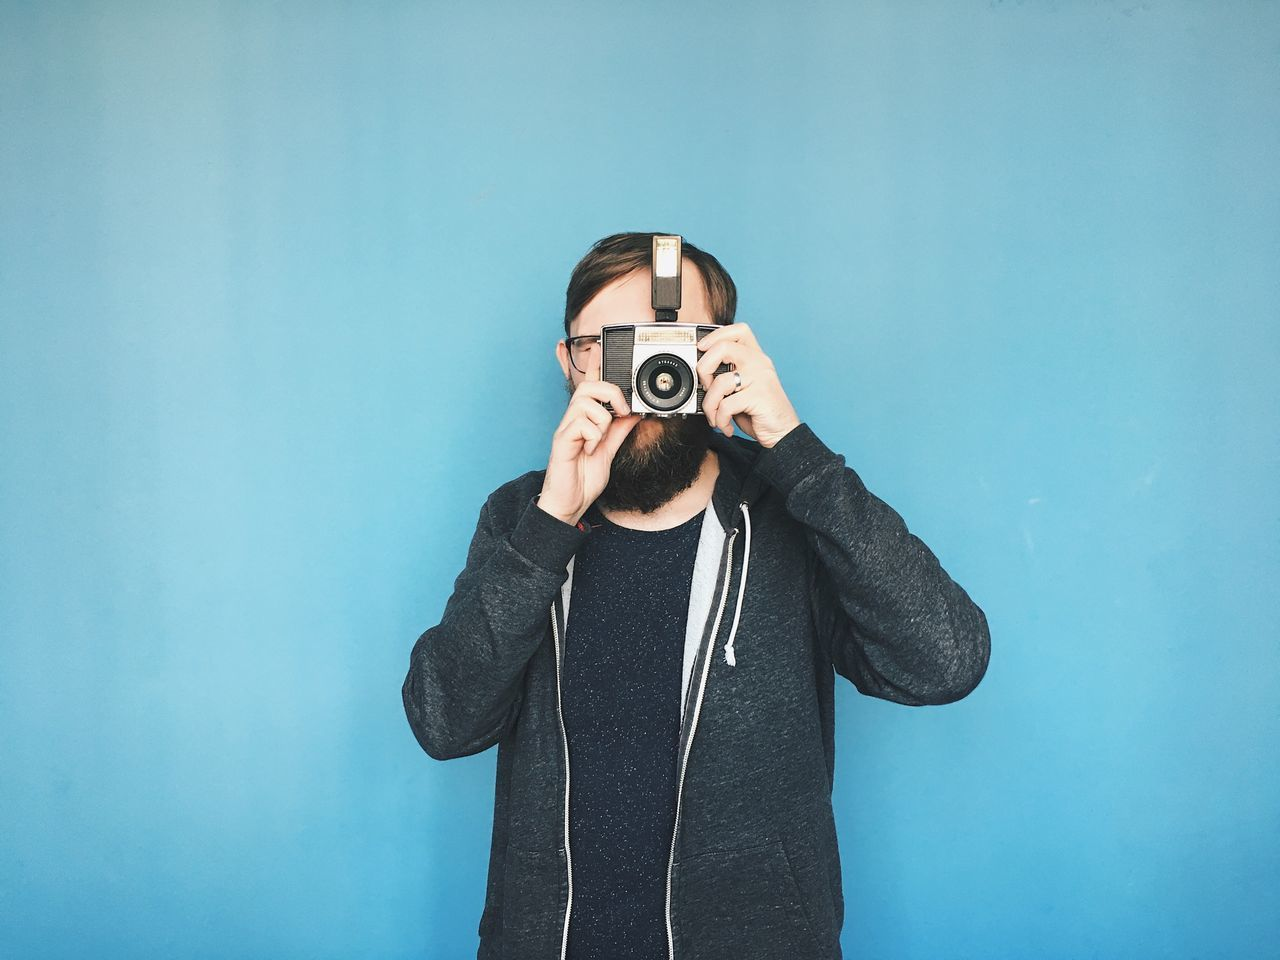 Analog Camera - Photographic Equipment Casual Clothing Colored Background Front View Holding Old-fashioned One Man Only One Person Photographing Photography Themes Portrait Real People Technology Waist Up Young Adult